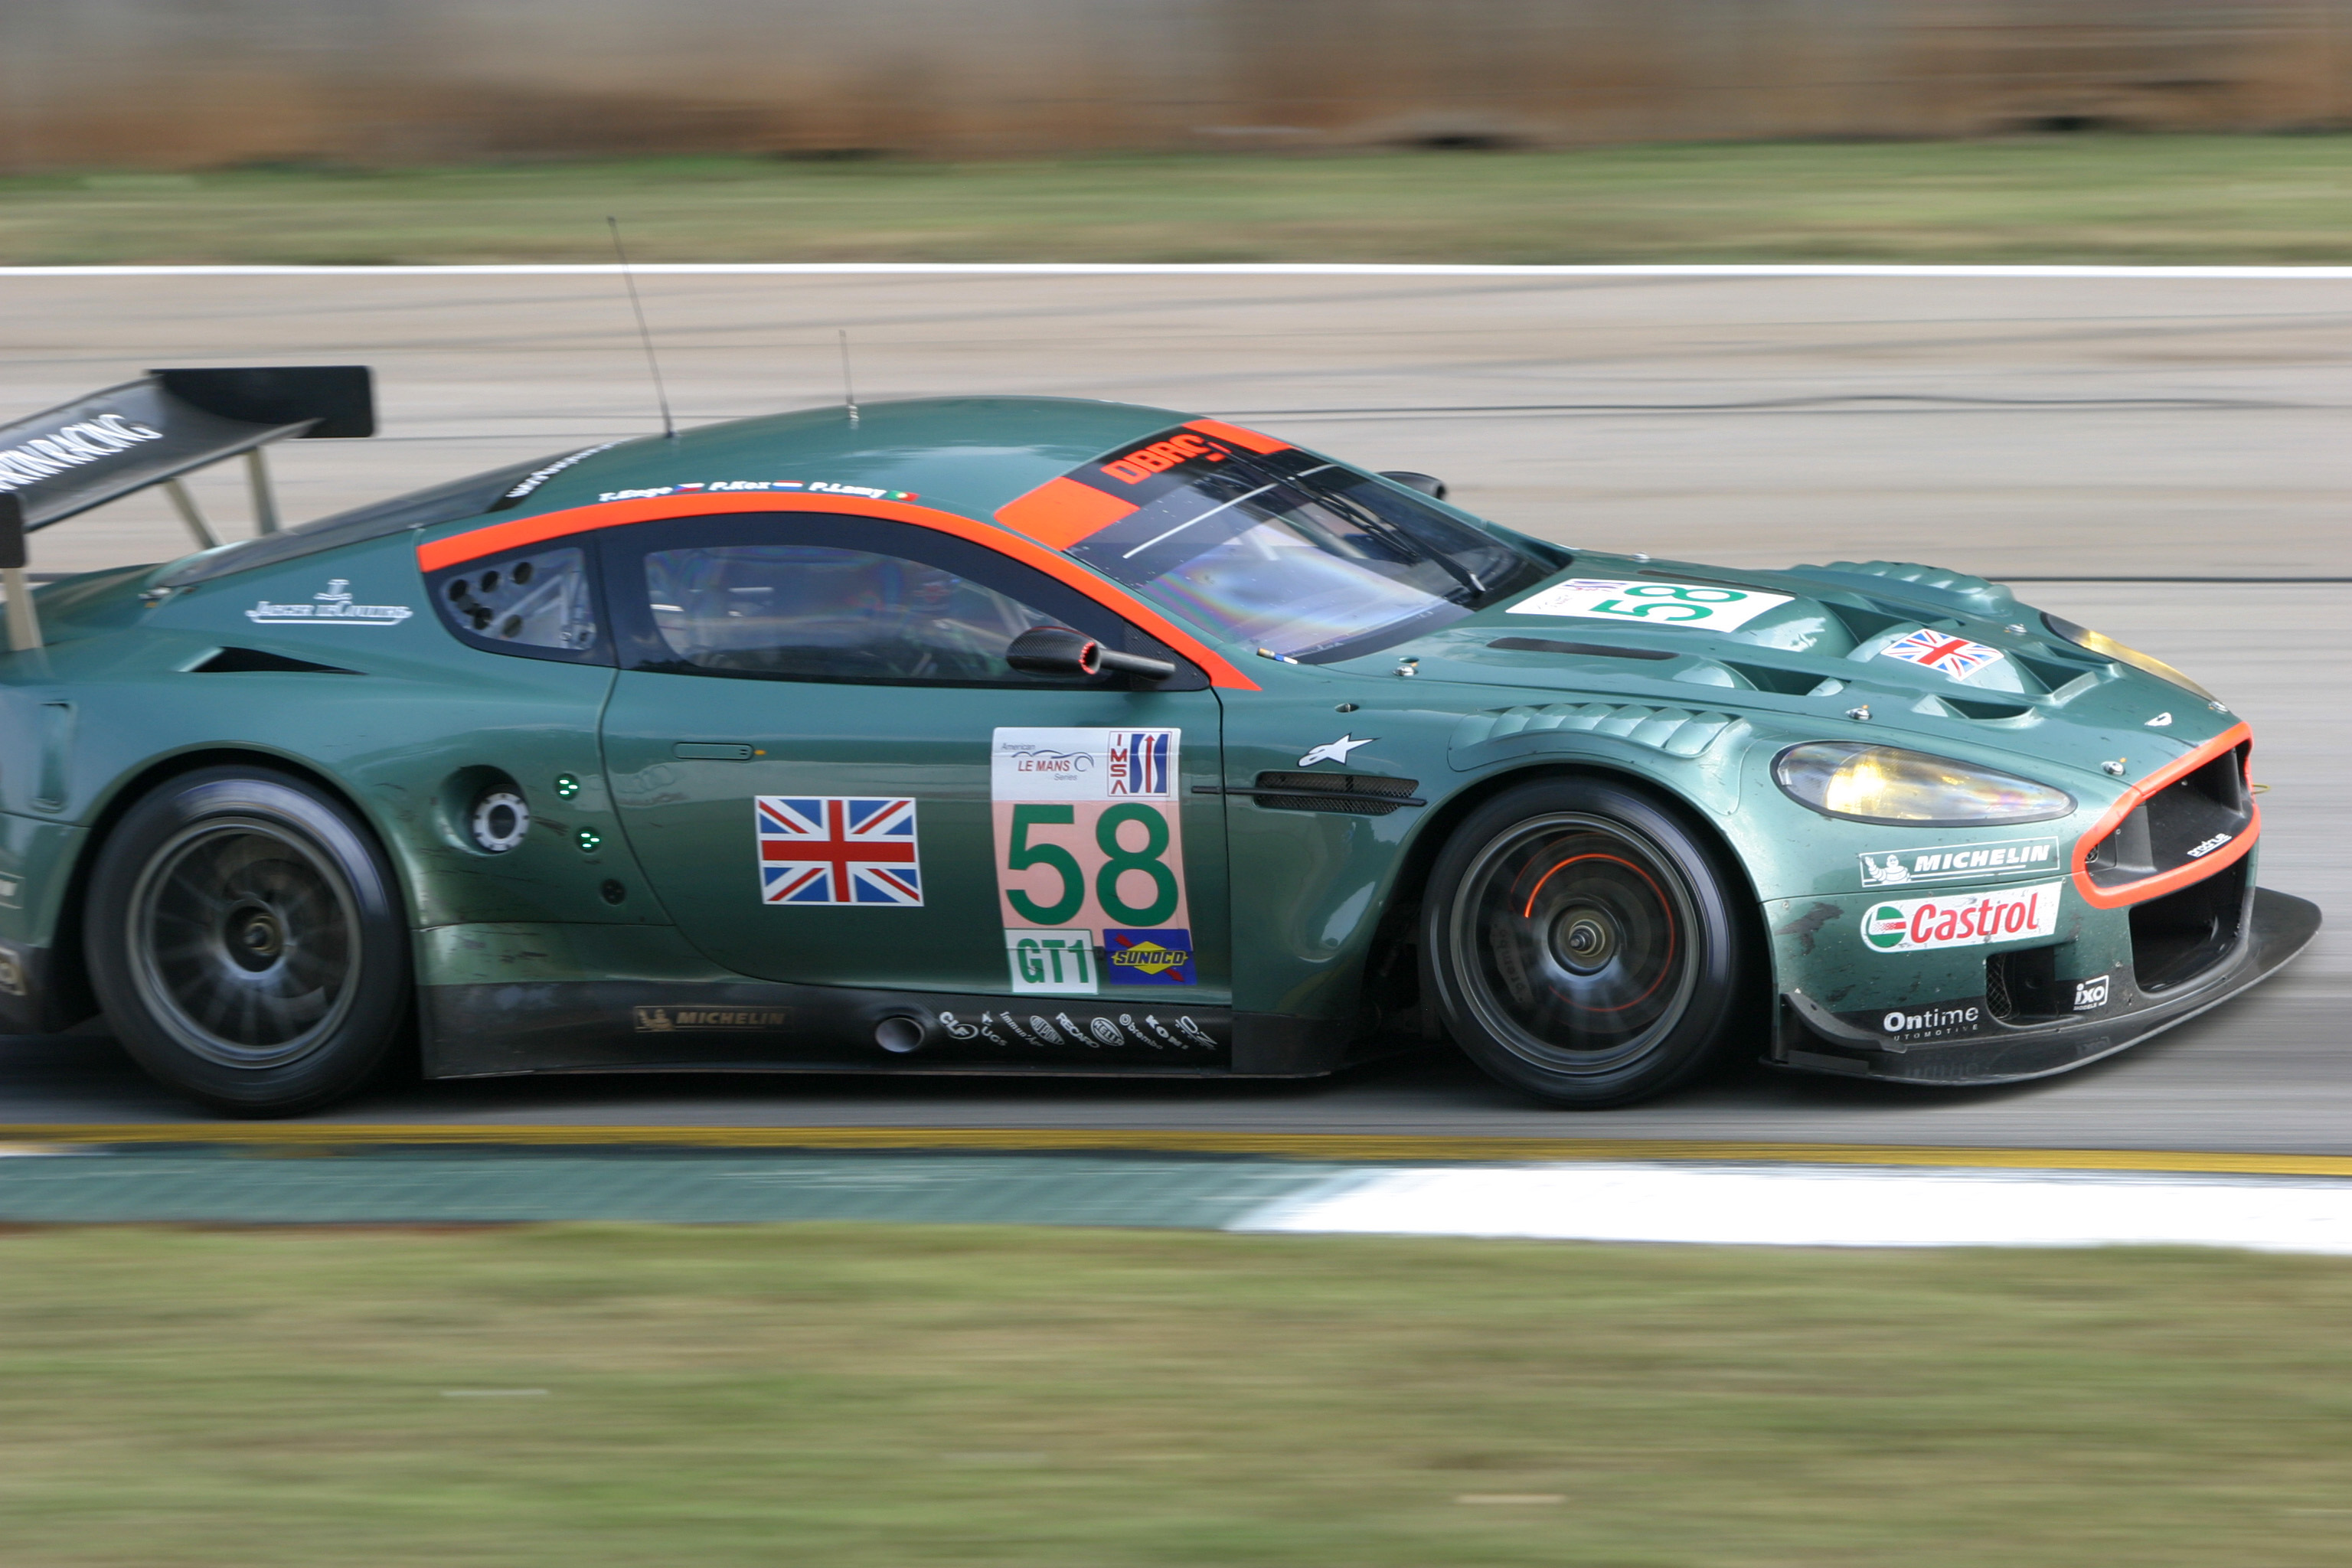 Aston martin dbr9 photo - 2